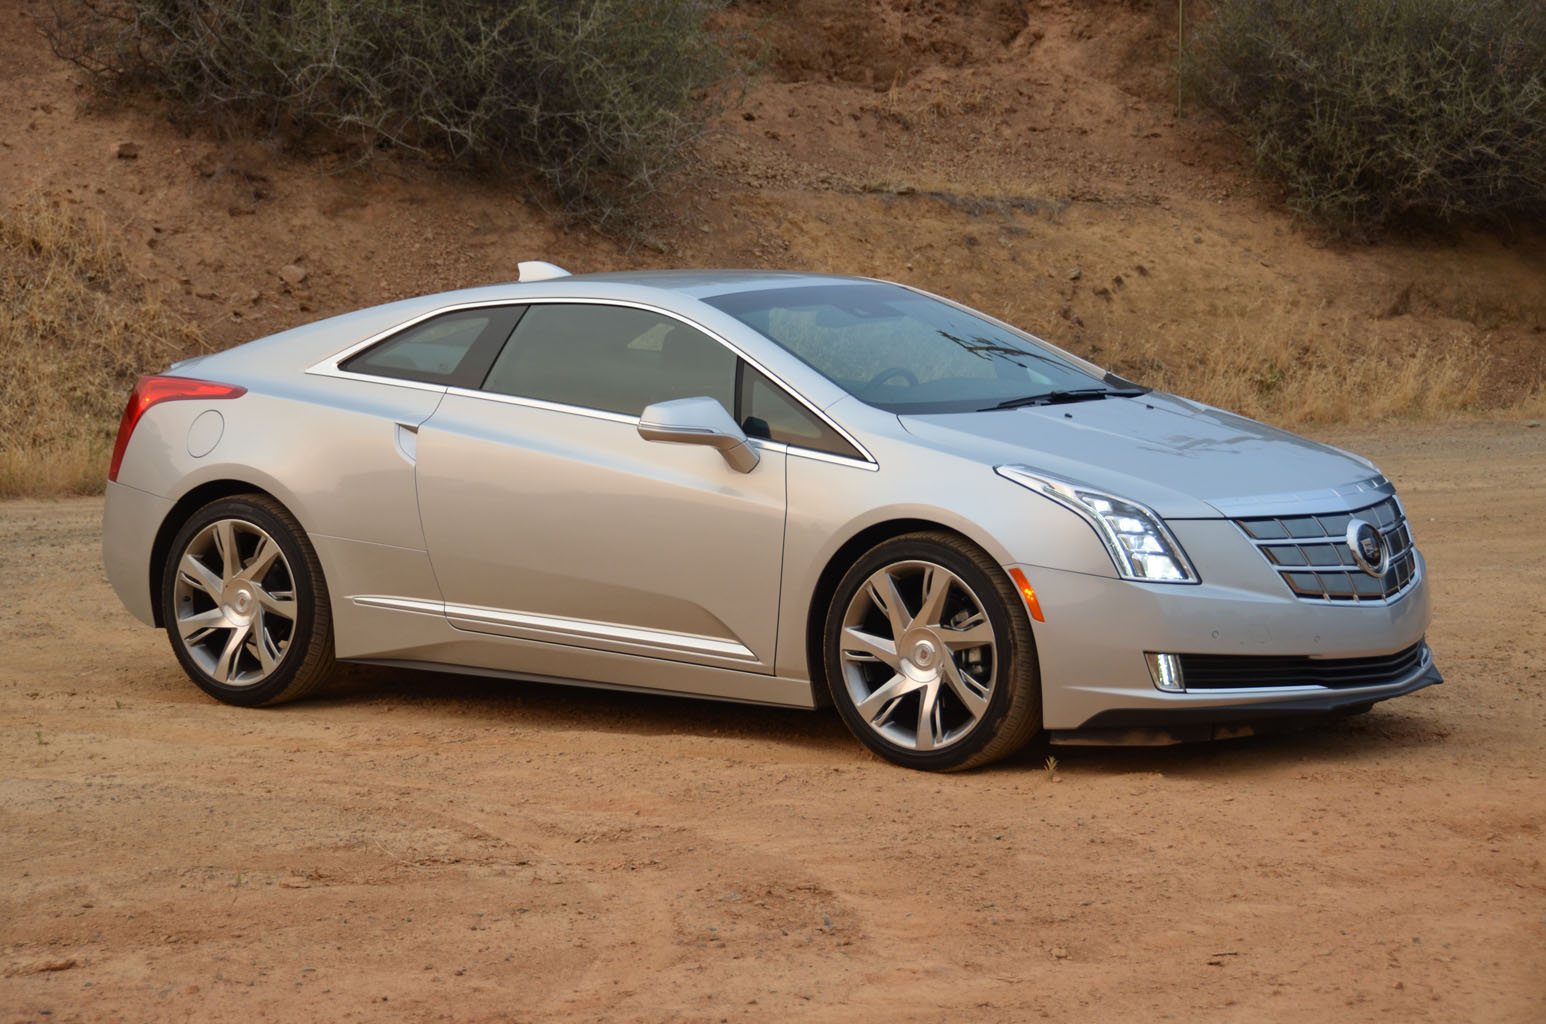 elr appears kill that for rip it new european opal cadillac sale is on variants are the gm way but going volt to